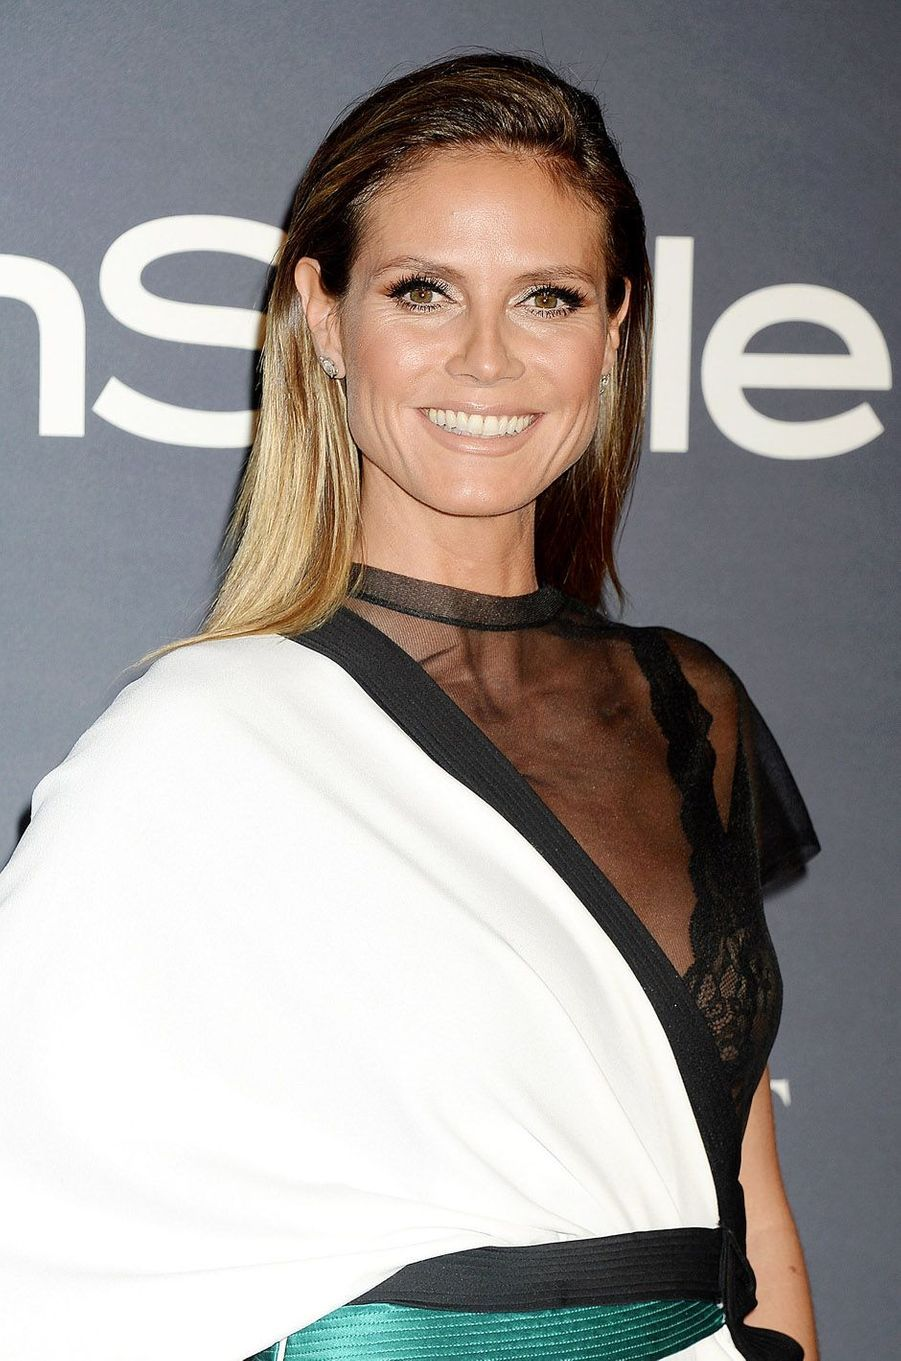 Heidi Klum, le 23 octobre 2017 à Los Angeles.